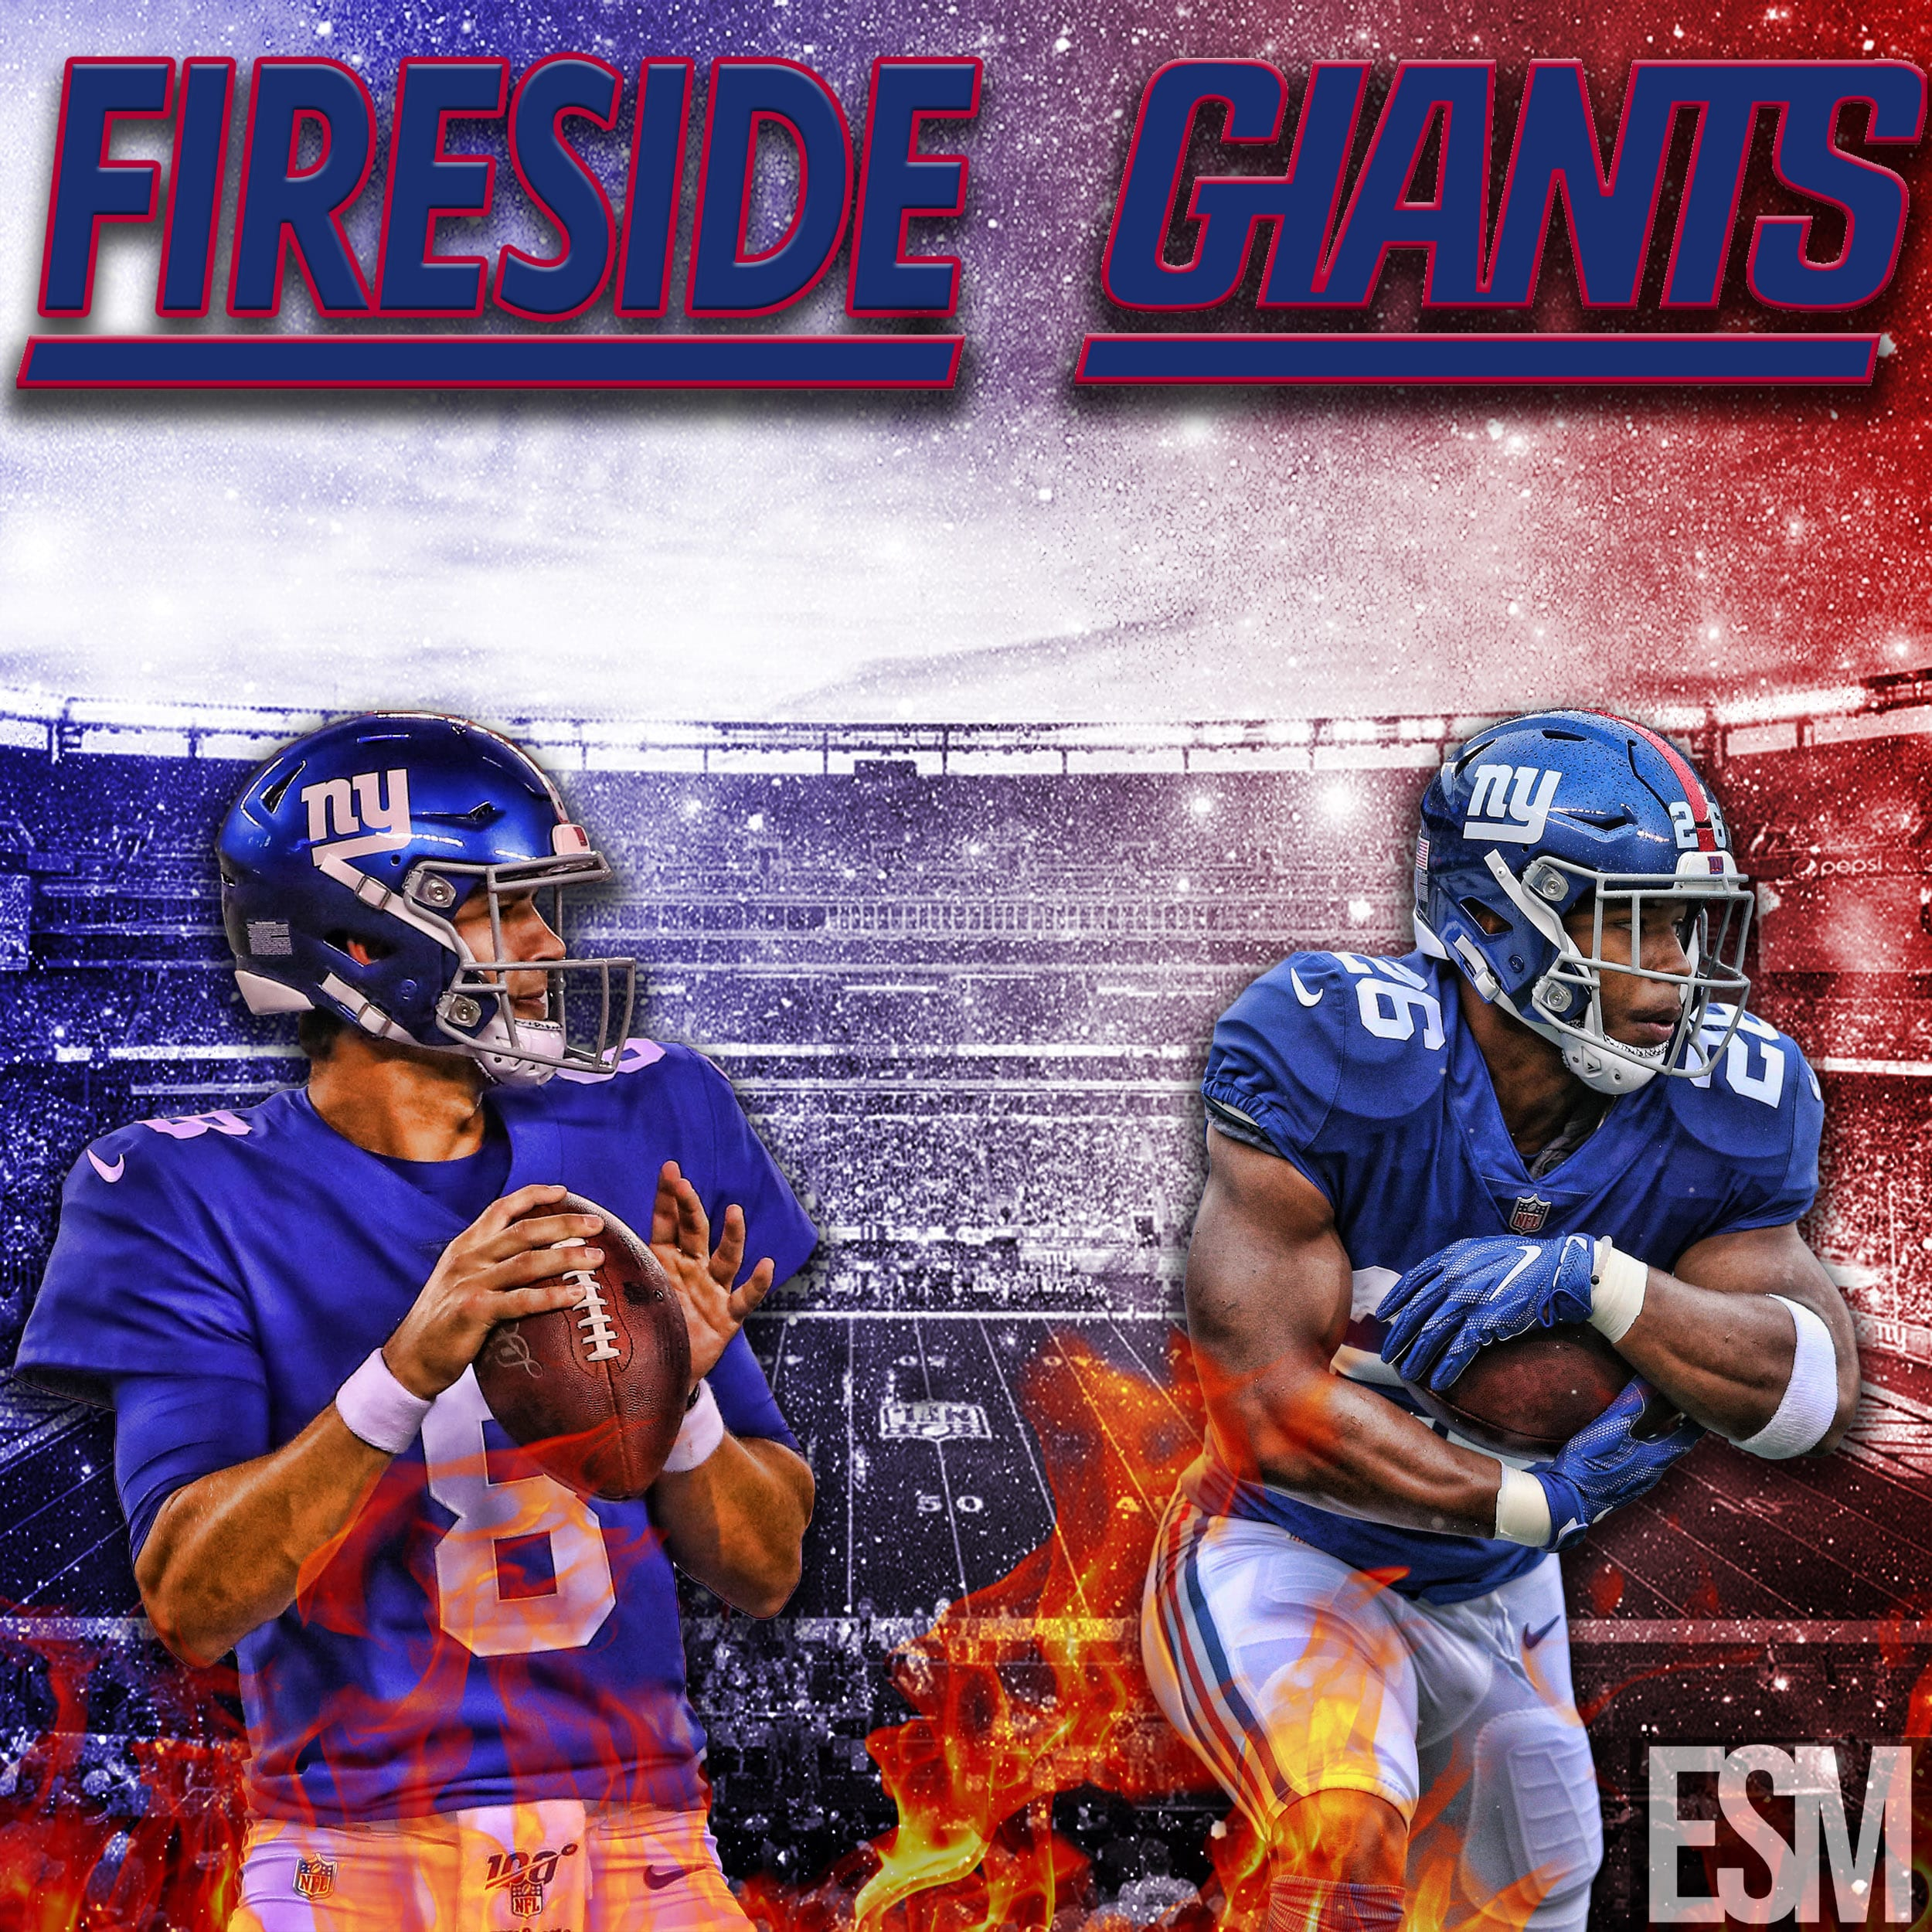 New York Giants, Fireside Giants